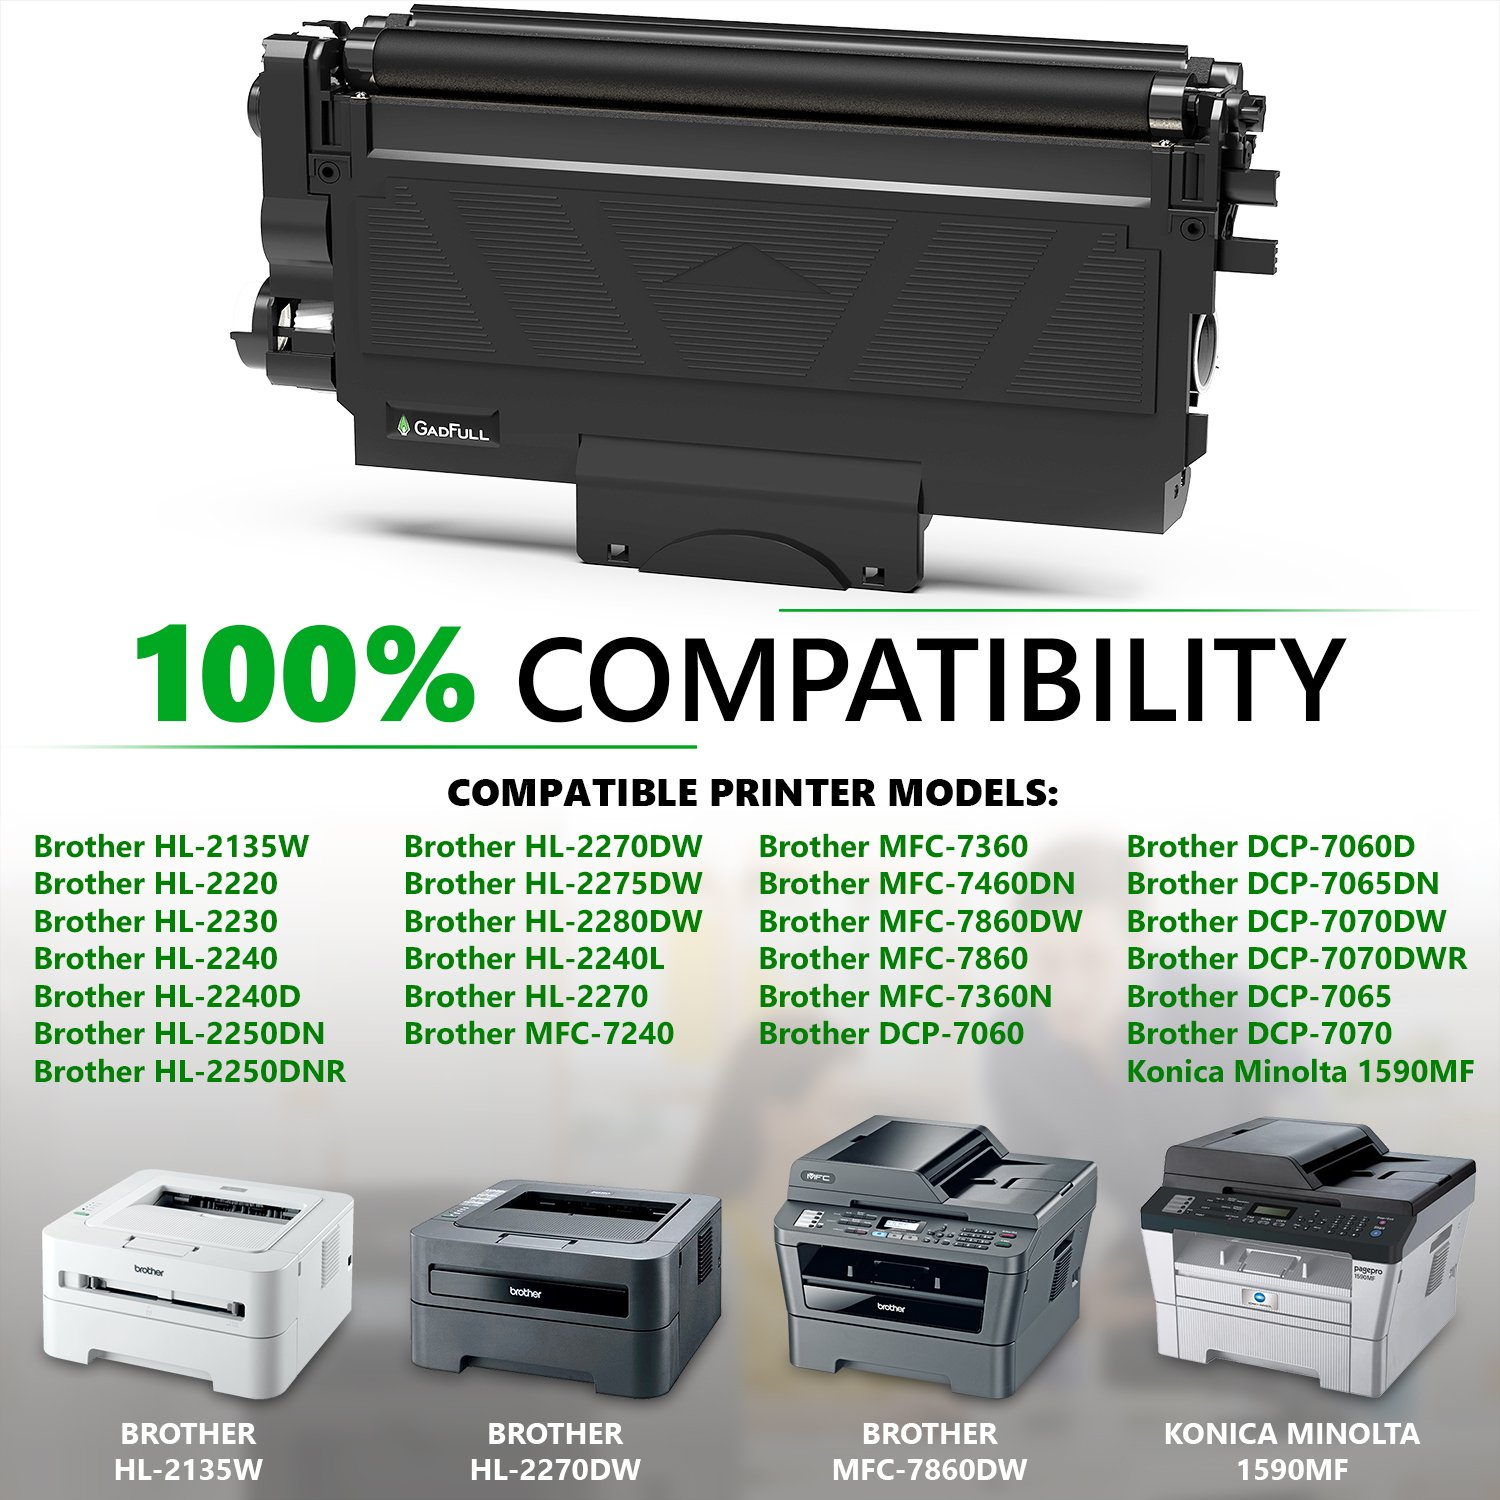 GadFull Tóner compatible con Brother HL-2135 W| 2230 | 2240 ...